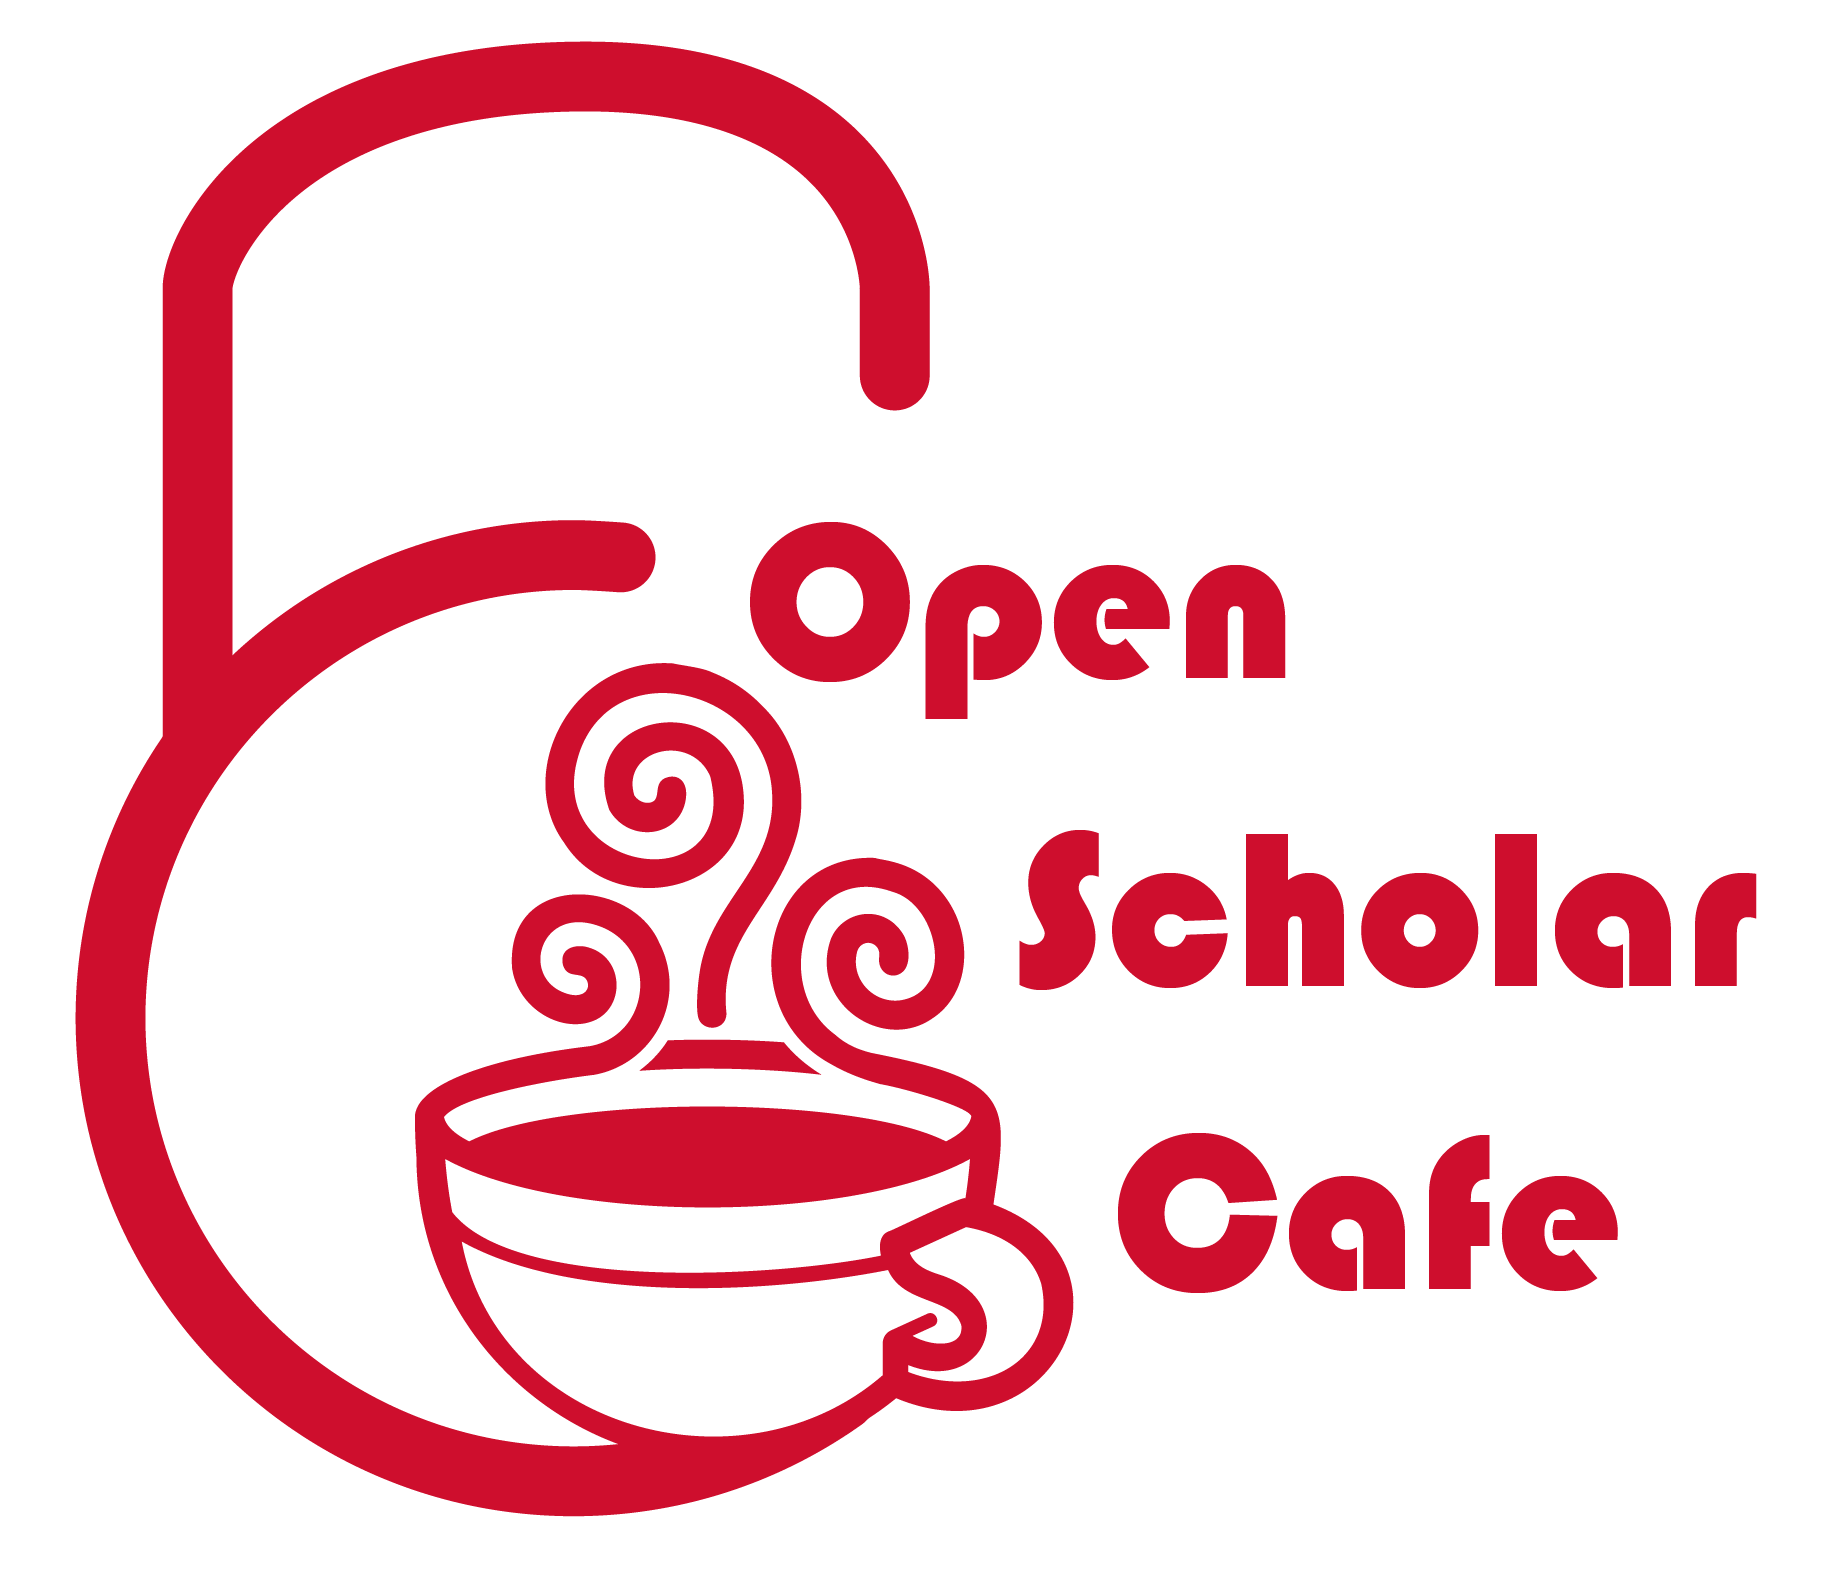 Open Scholar Cafe logo with steaming mug and open padlock